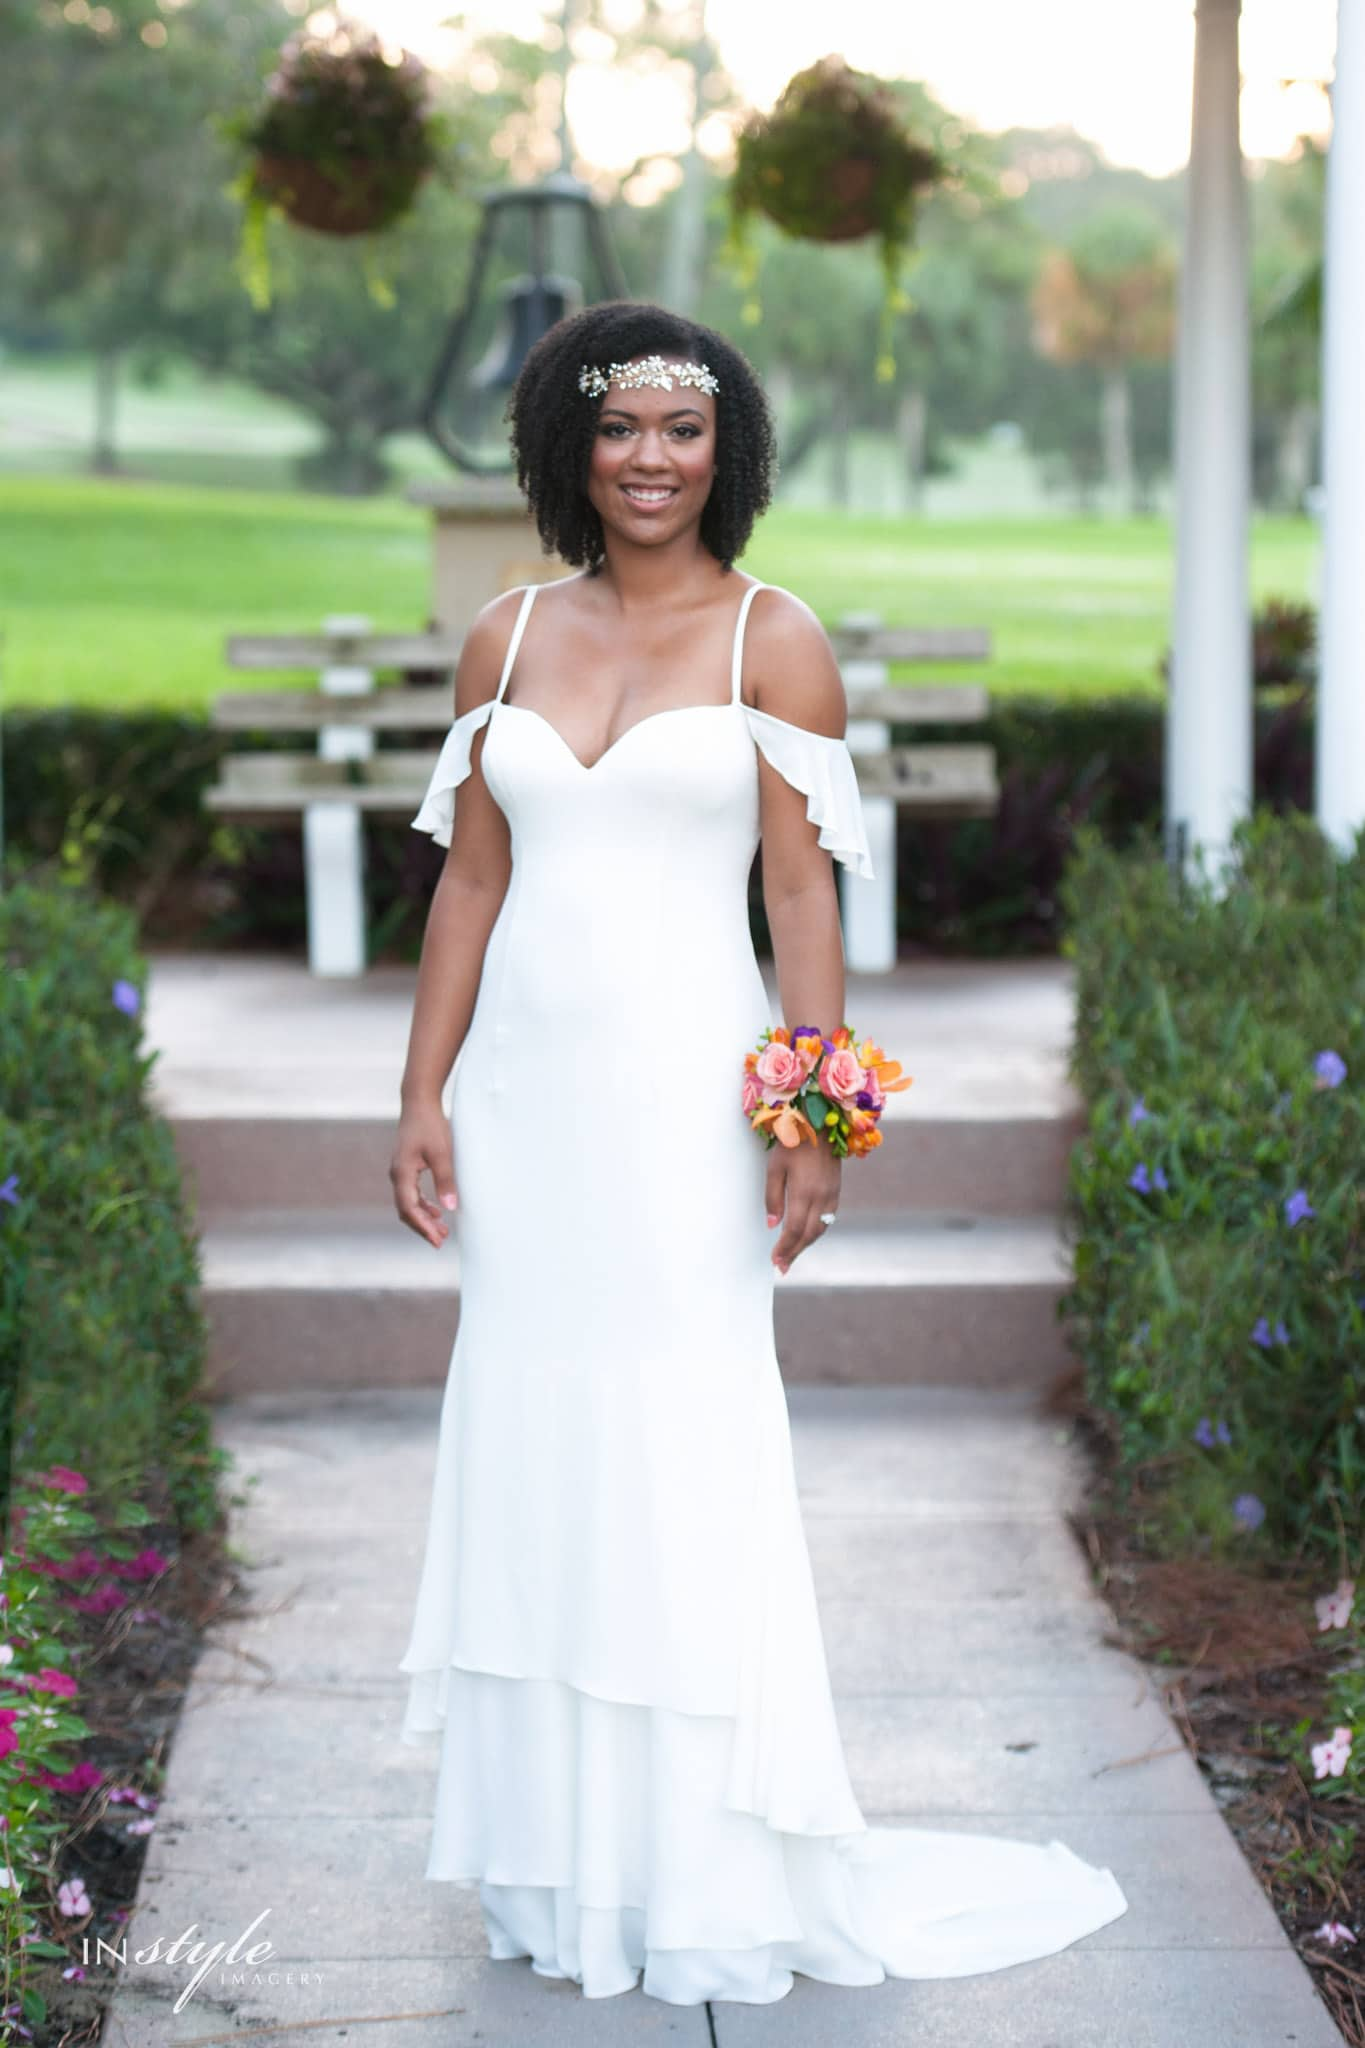 Lovely African American bride in simple sheath dress